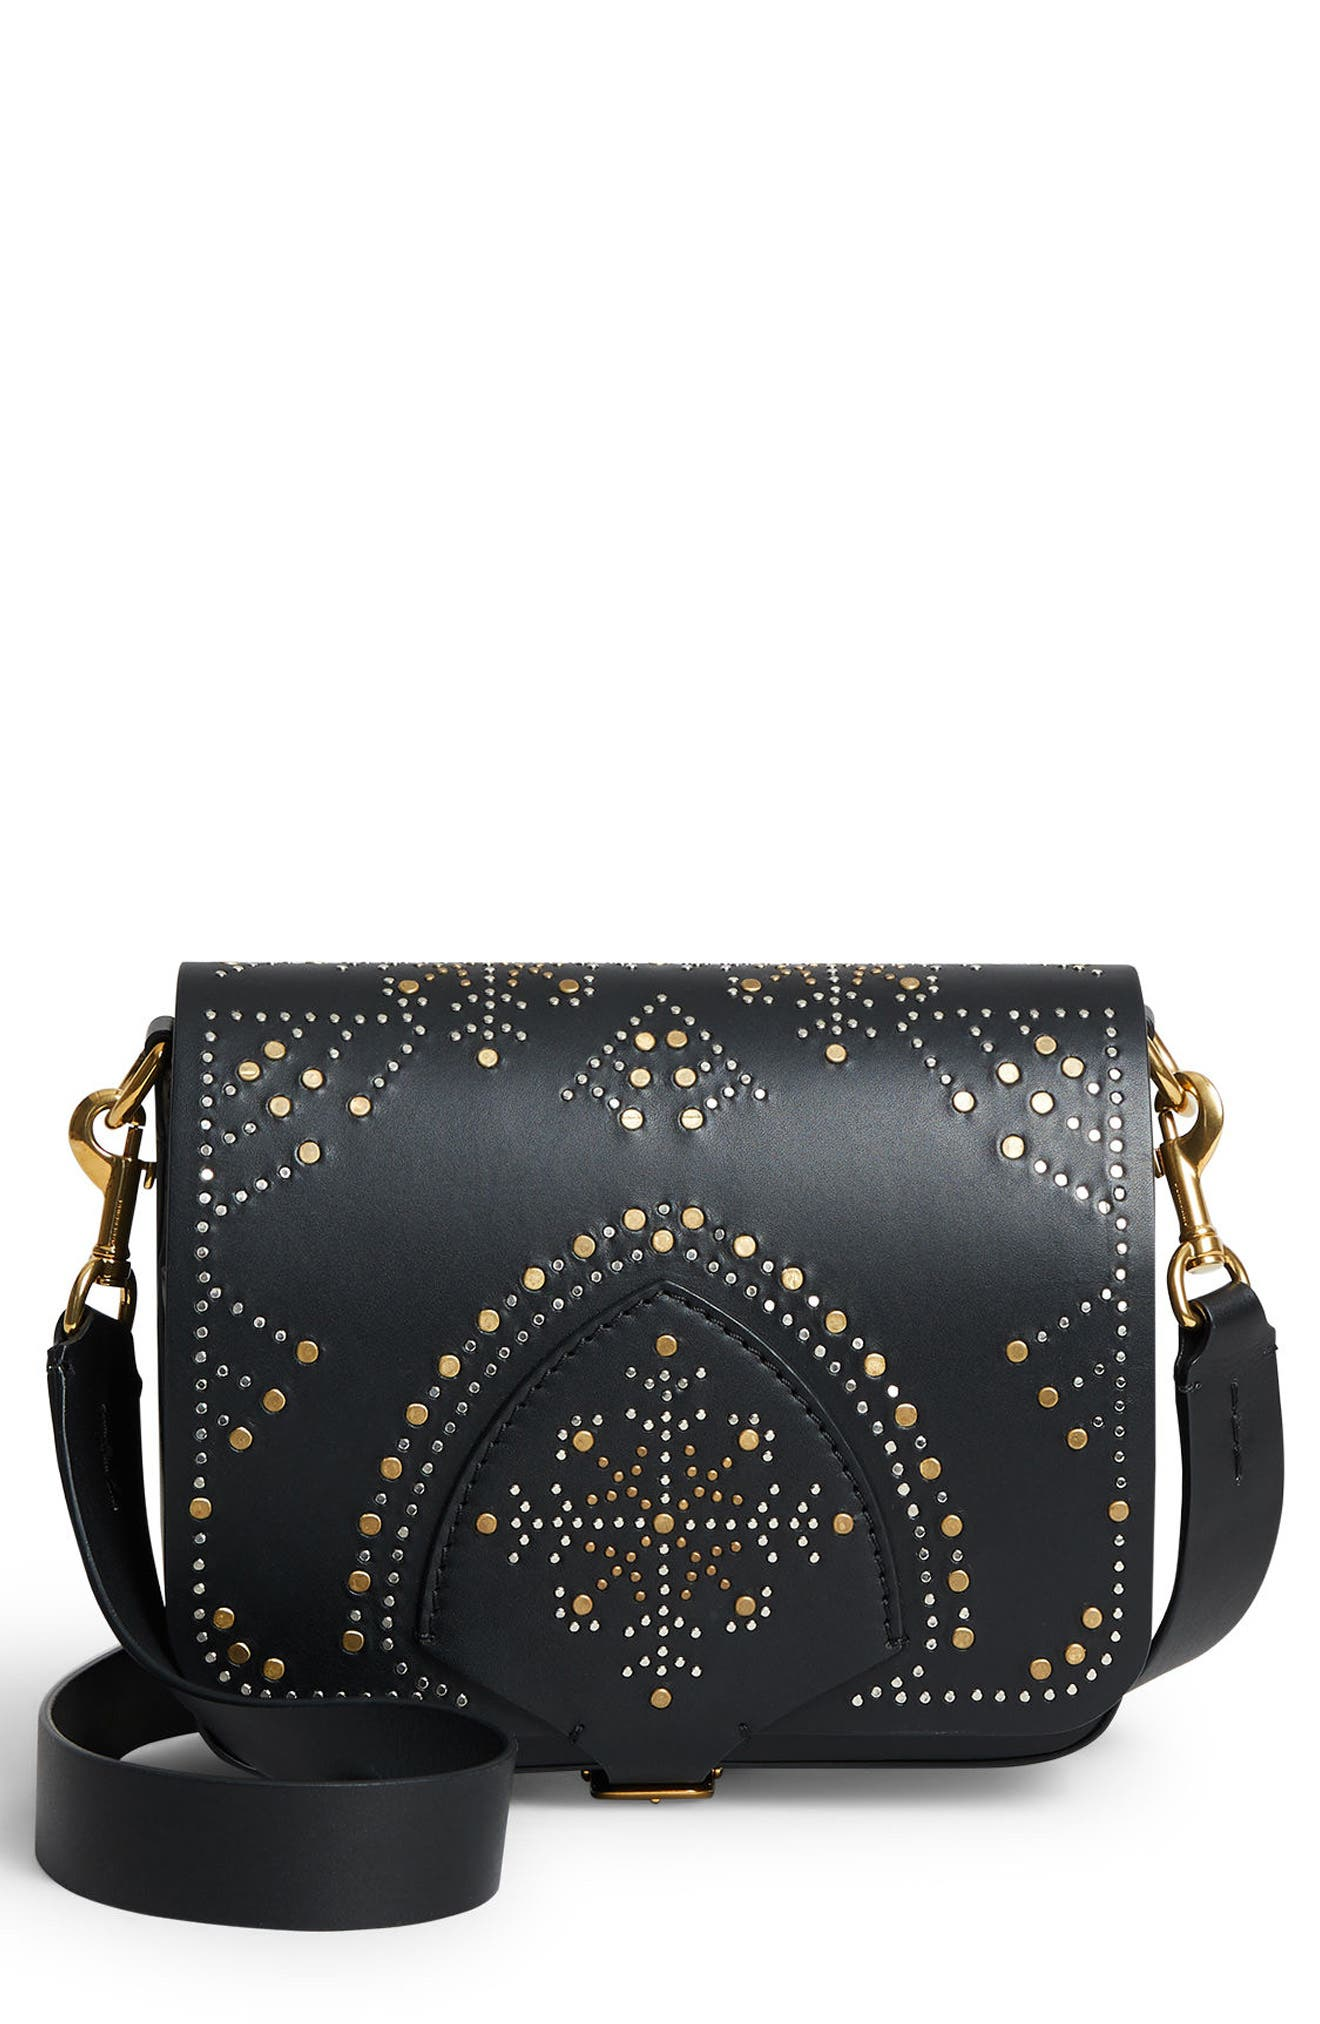 Burberry Studded Lambskin Leather Shoulder Bag